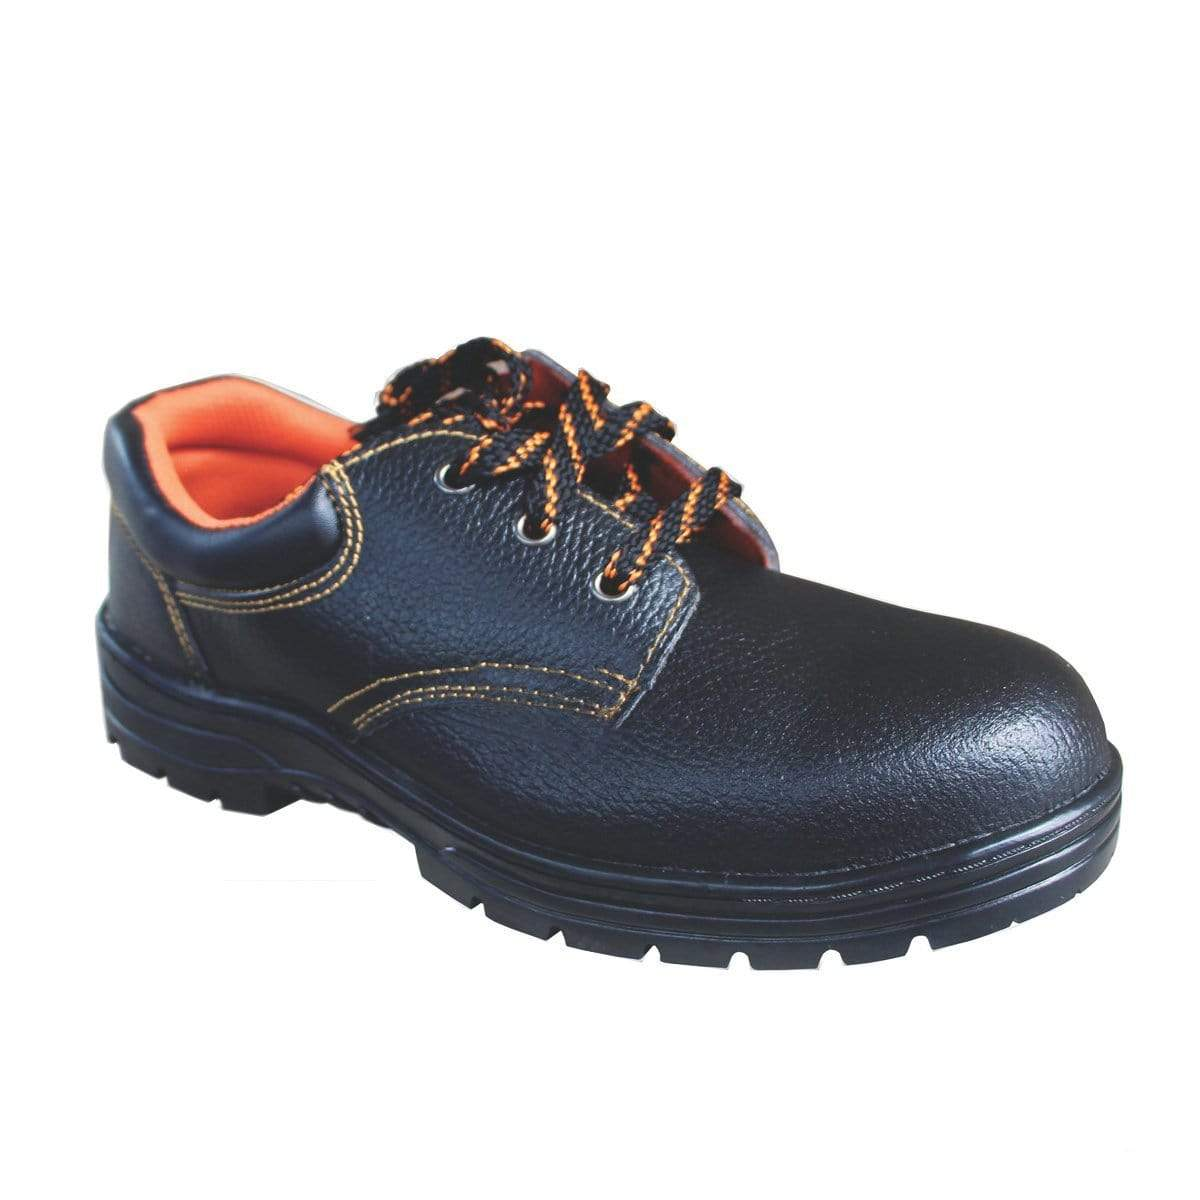 ANEKA Worker Safety Shoes Safety Boots Steel Toe Cap Kasut UK6 1000#